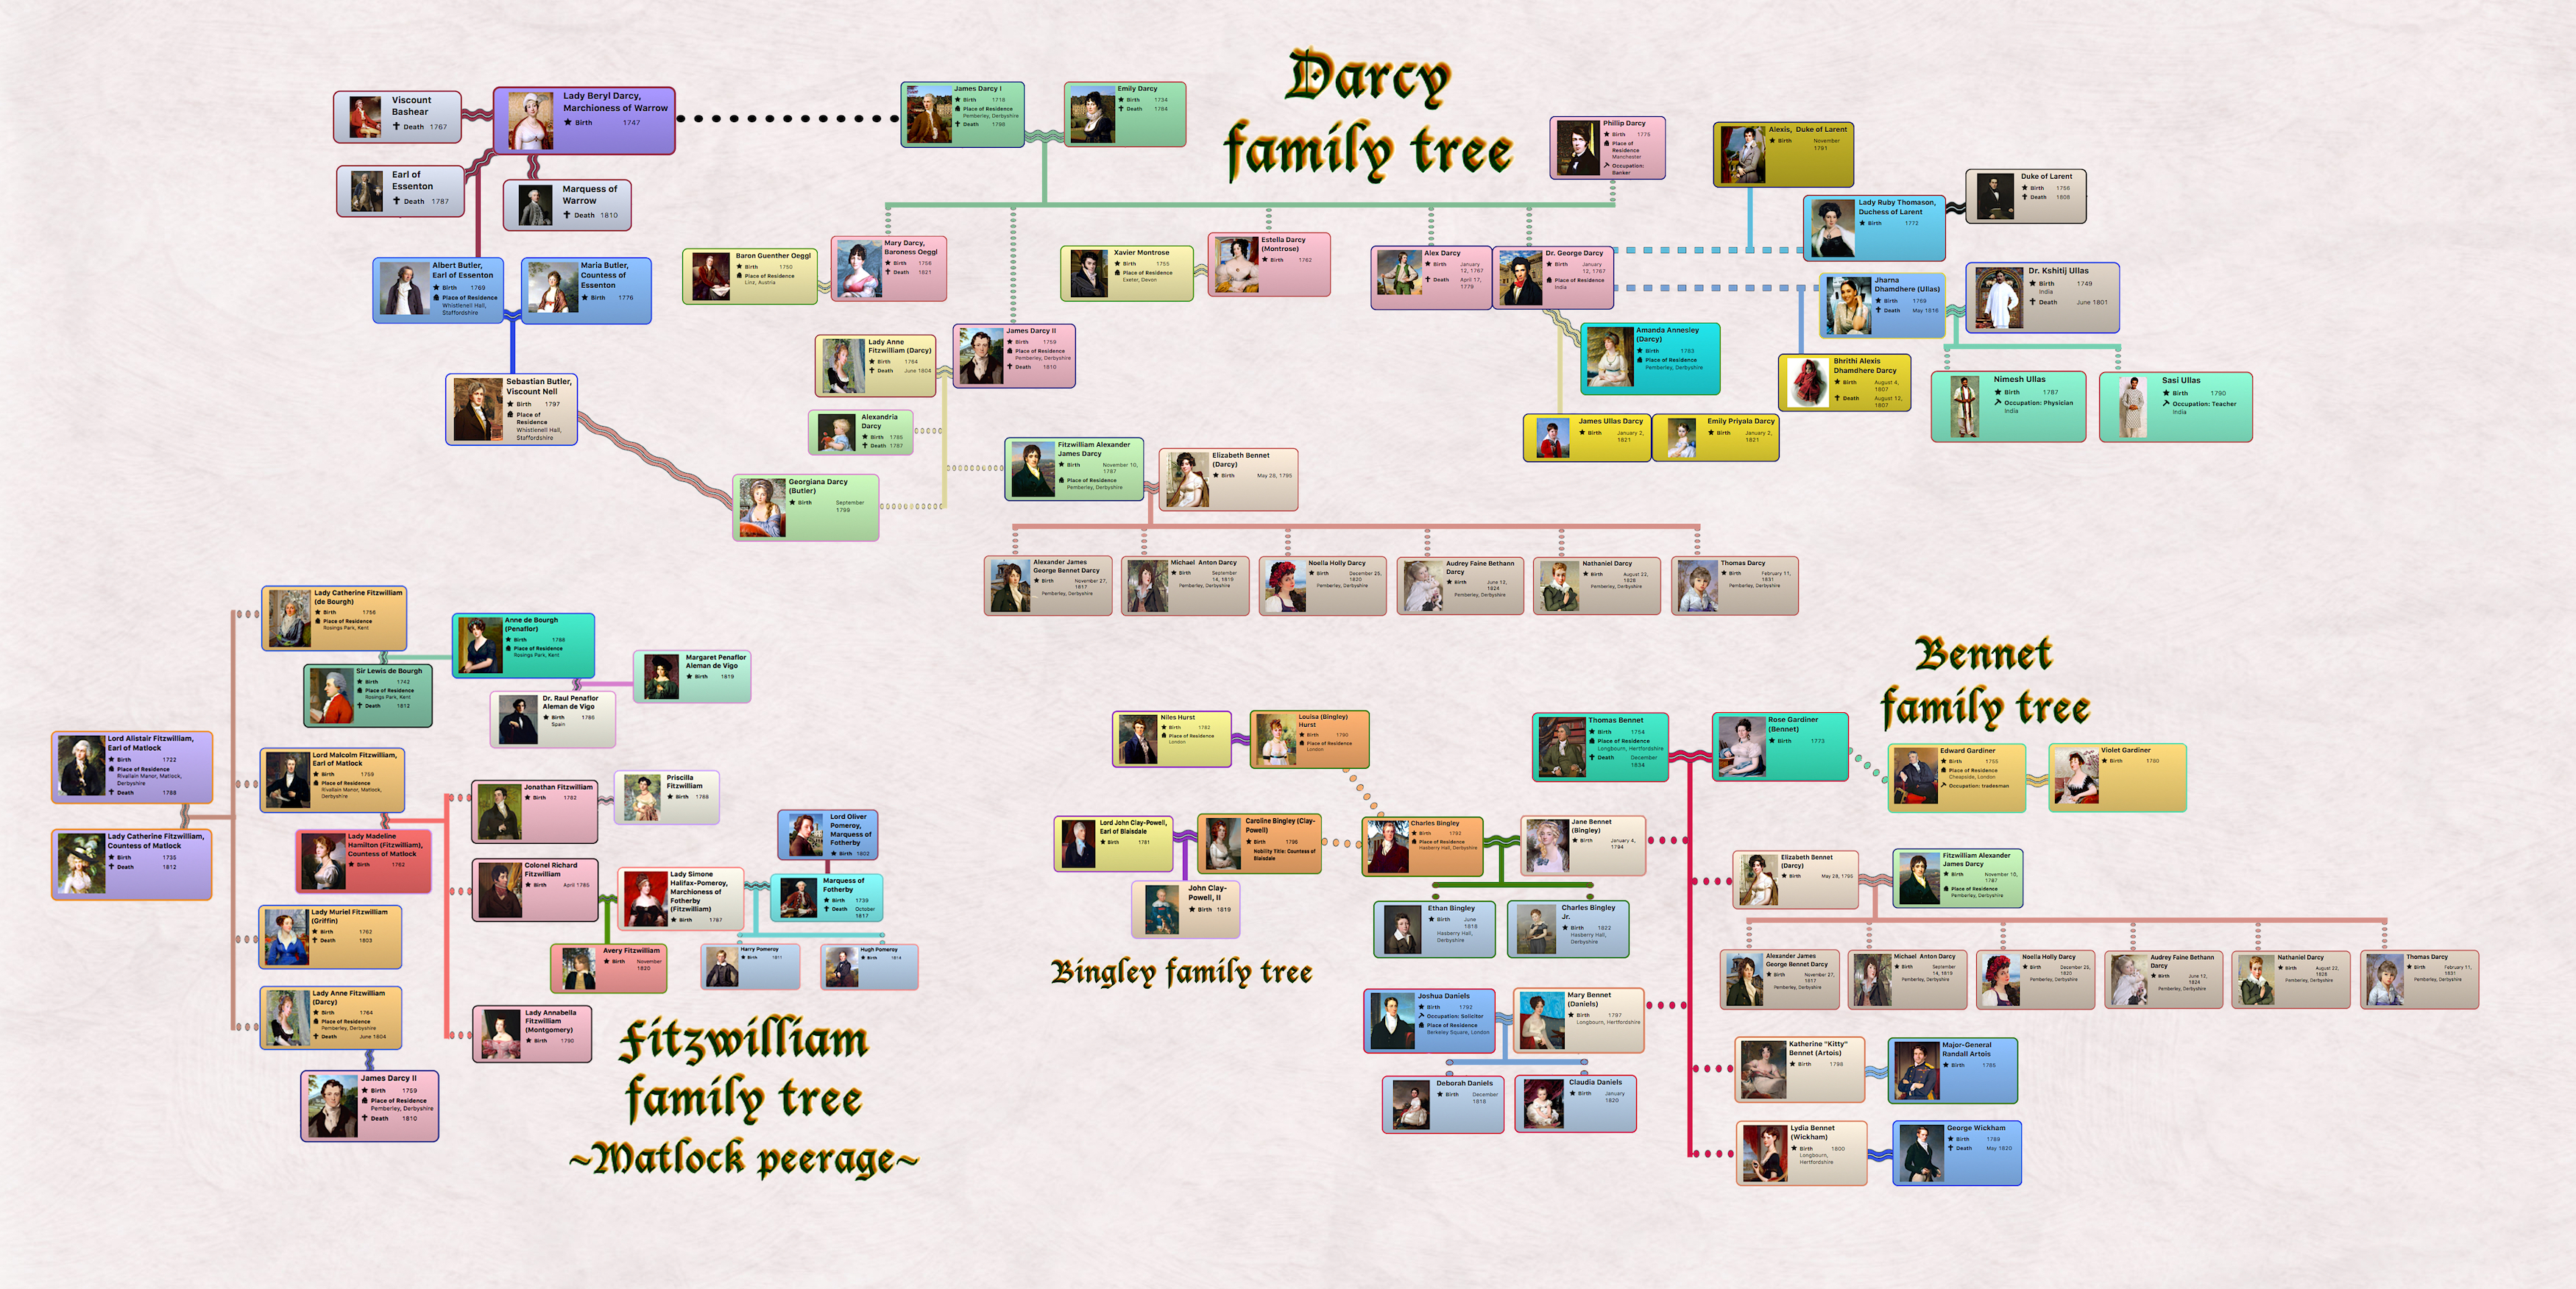 Darcy saga characters by sharon lathan novelist - Family tree desktop wallpaper ...